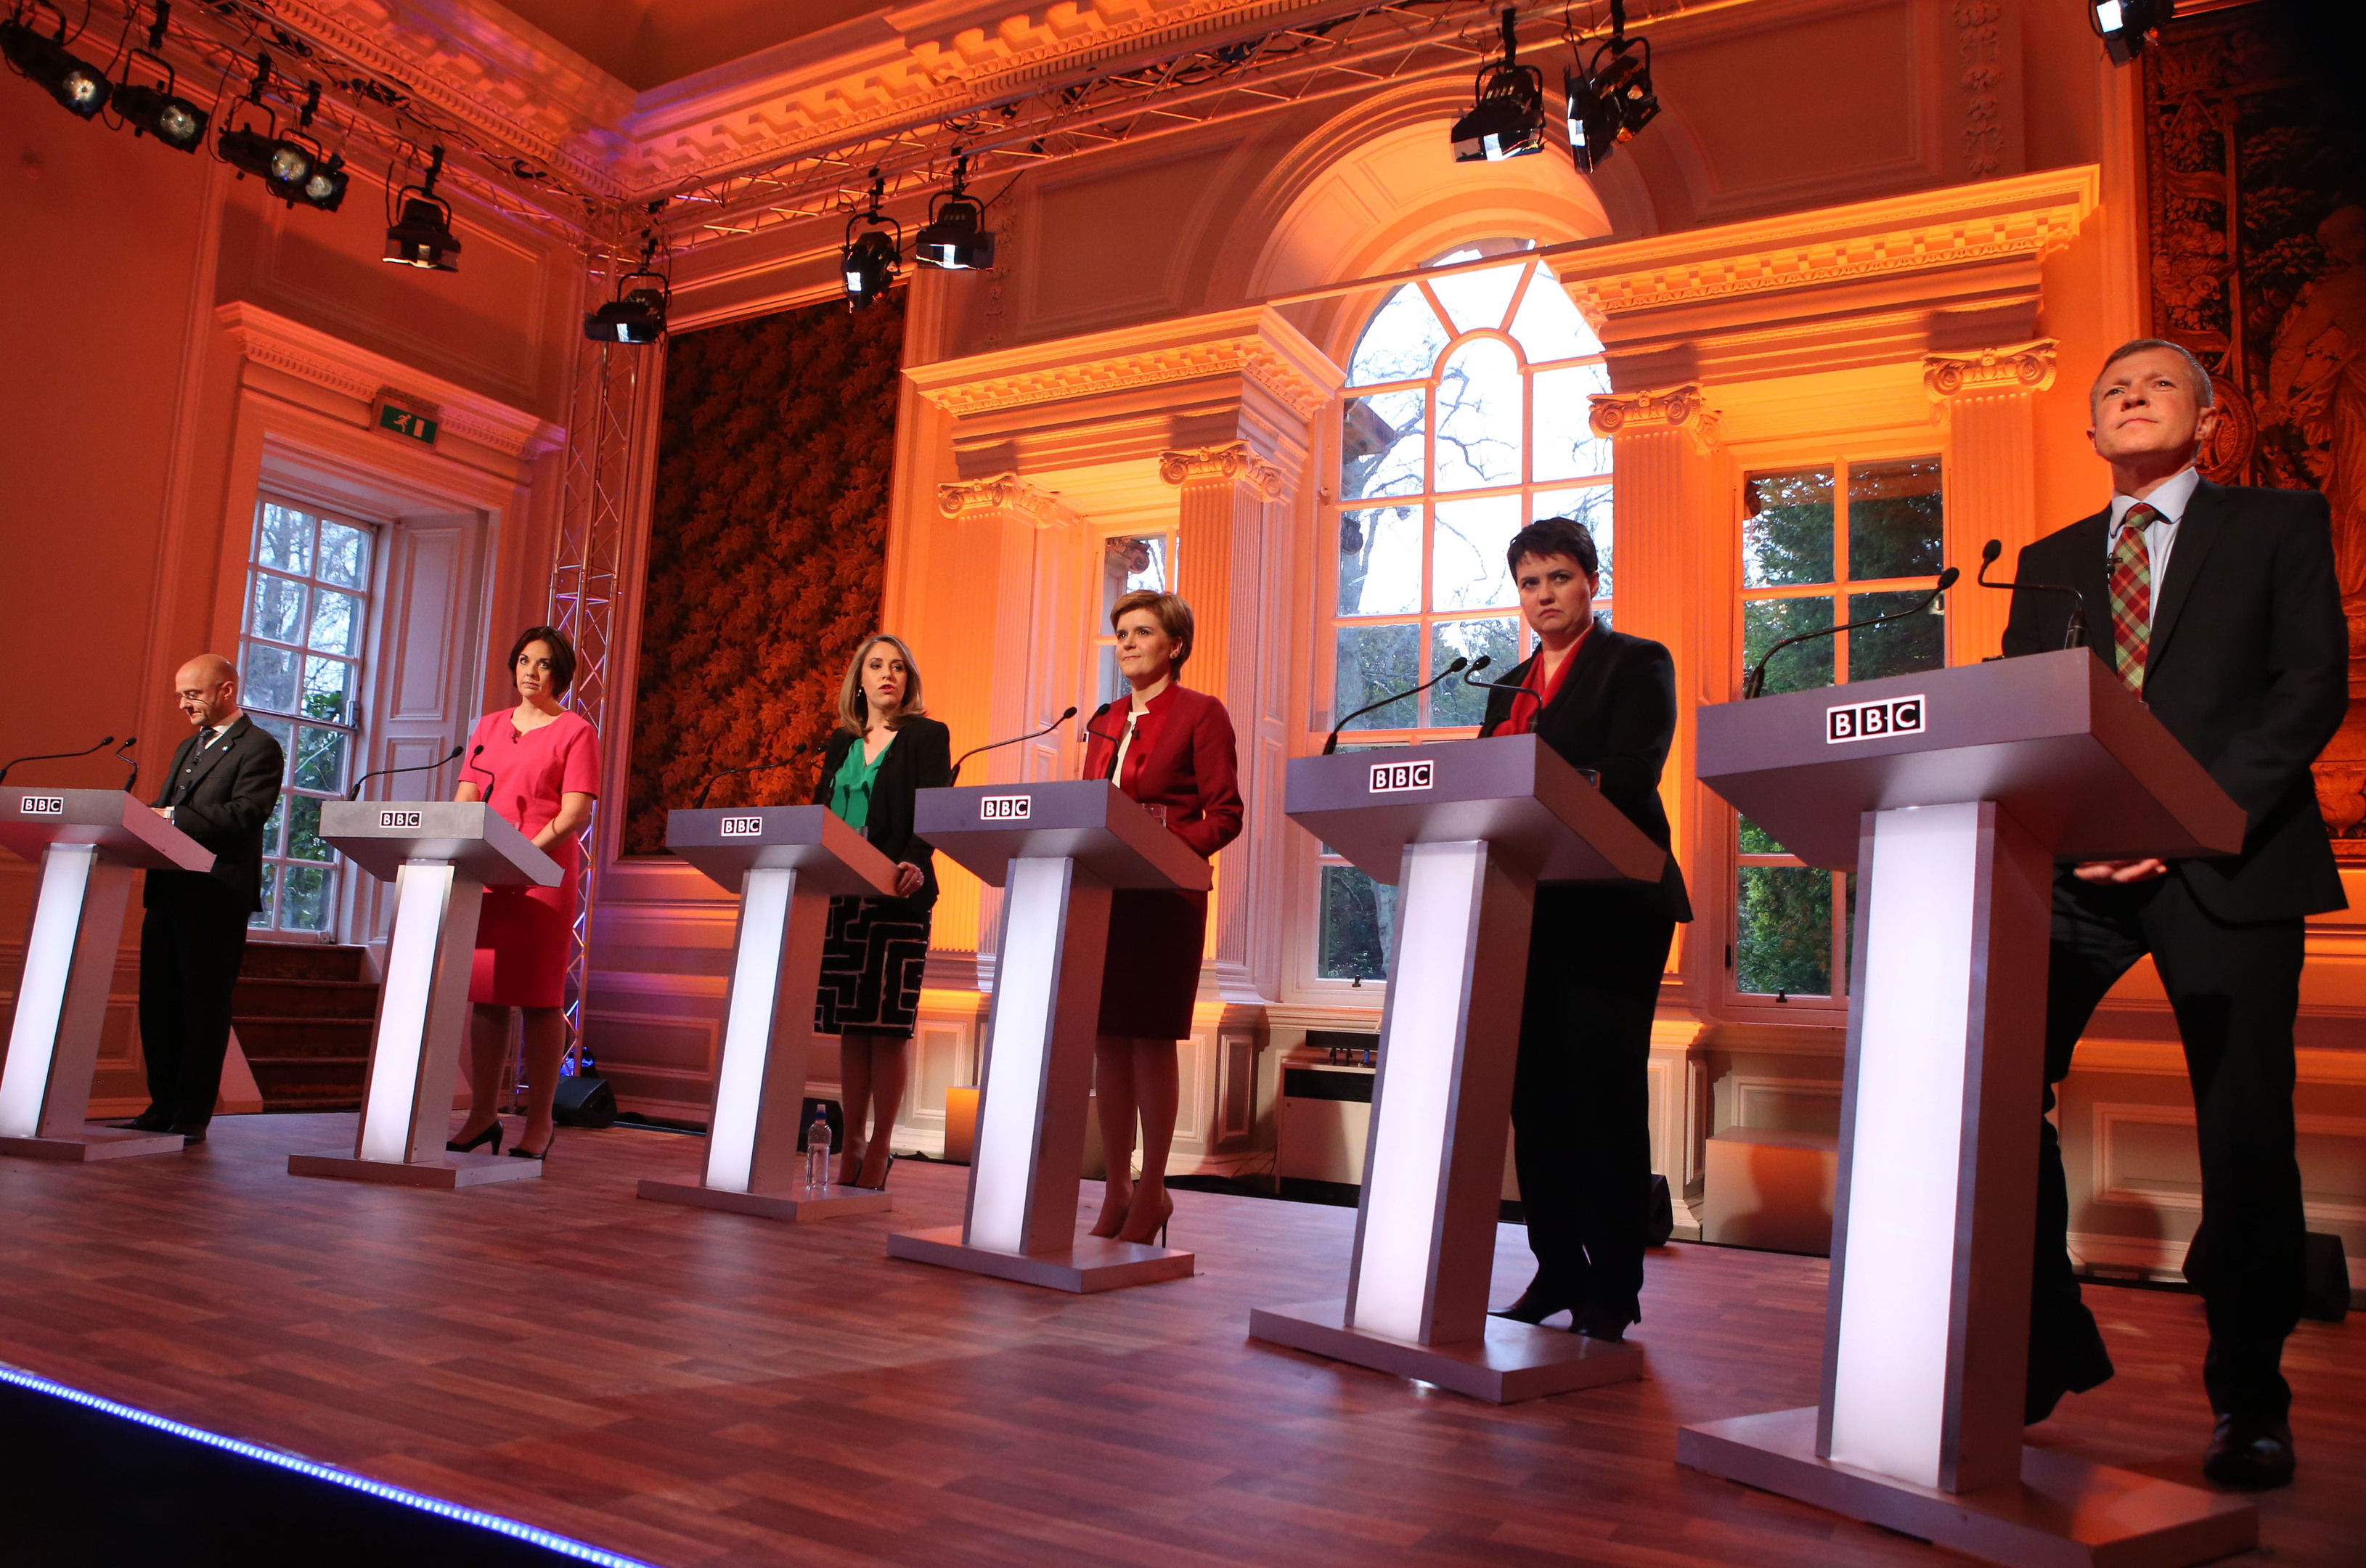 The BBC Leaders Debate at Hopetoun House in Queensferry.